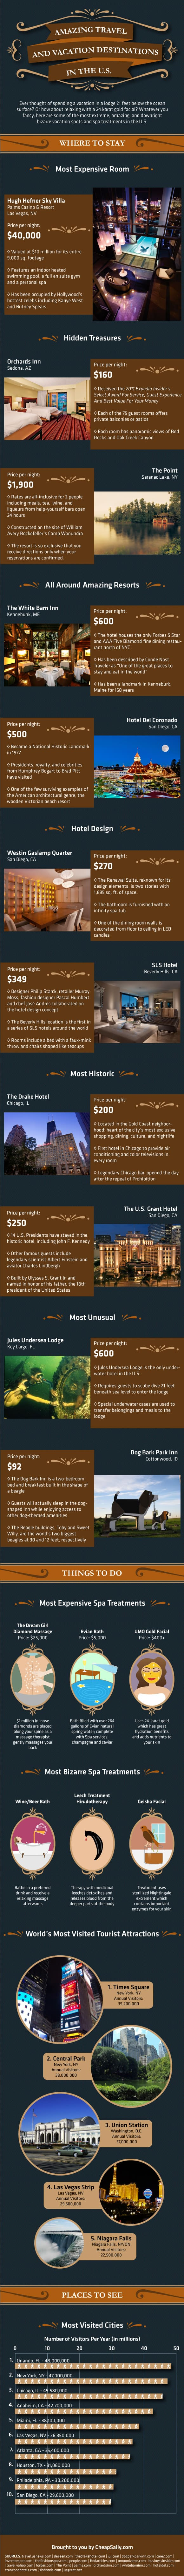 Cheap Sally Travel Vacation Sites Infographic